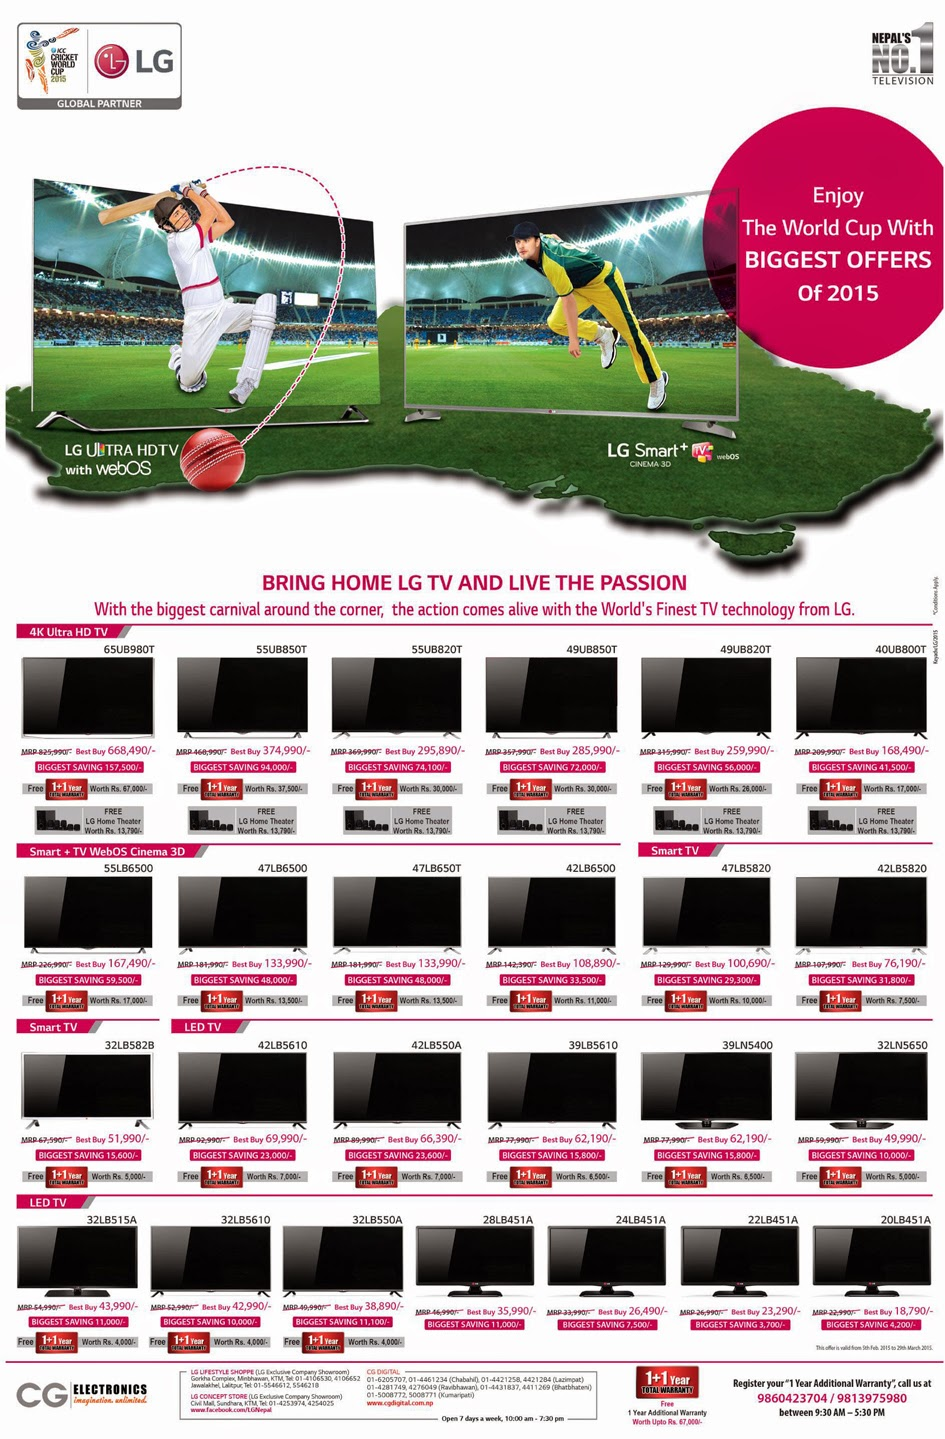 lg-discount-on-tv-icc-cricket-world-cup-2015